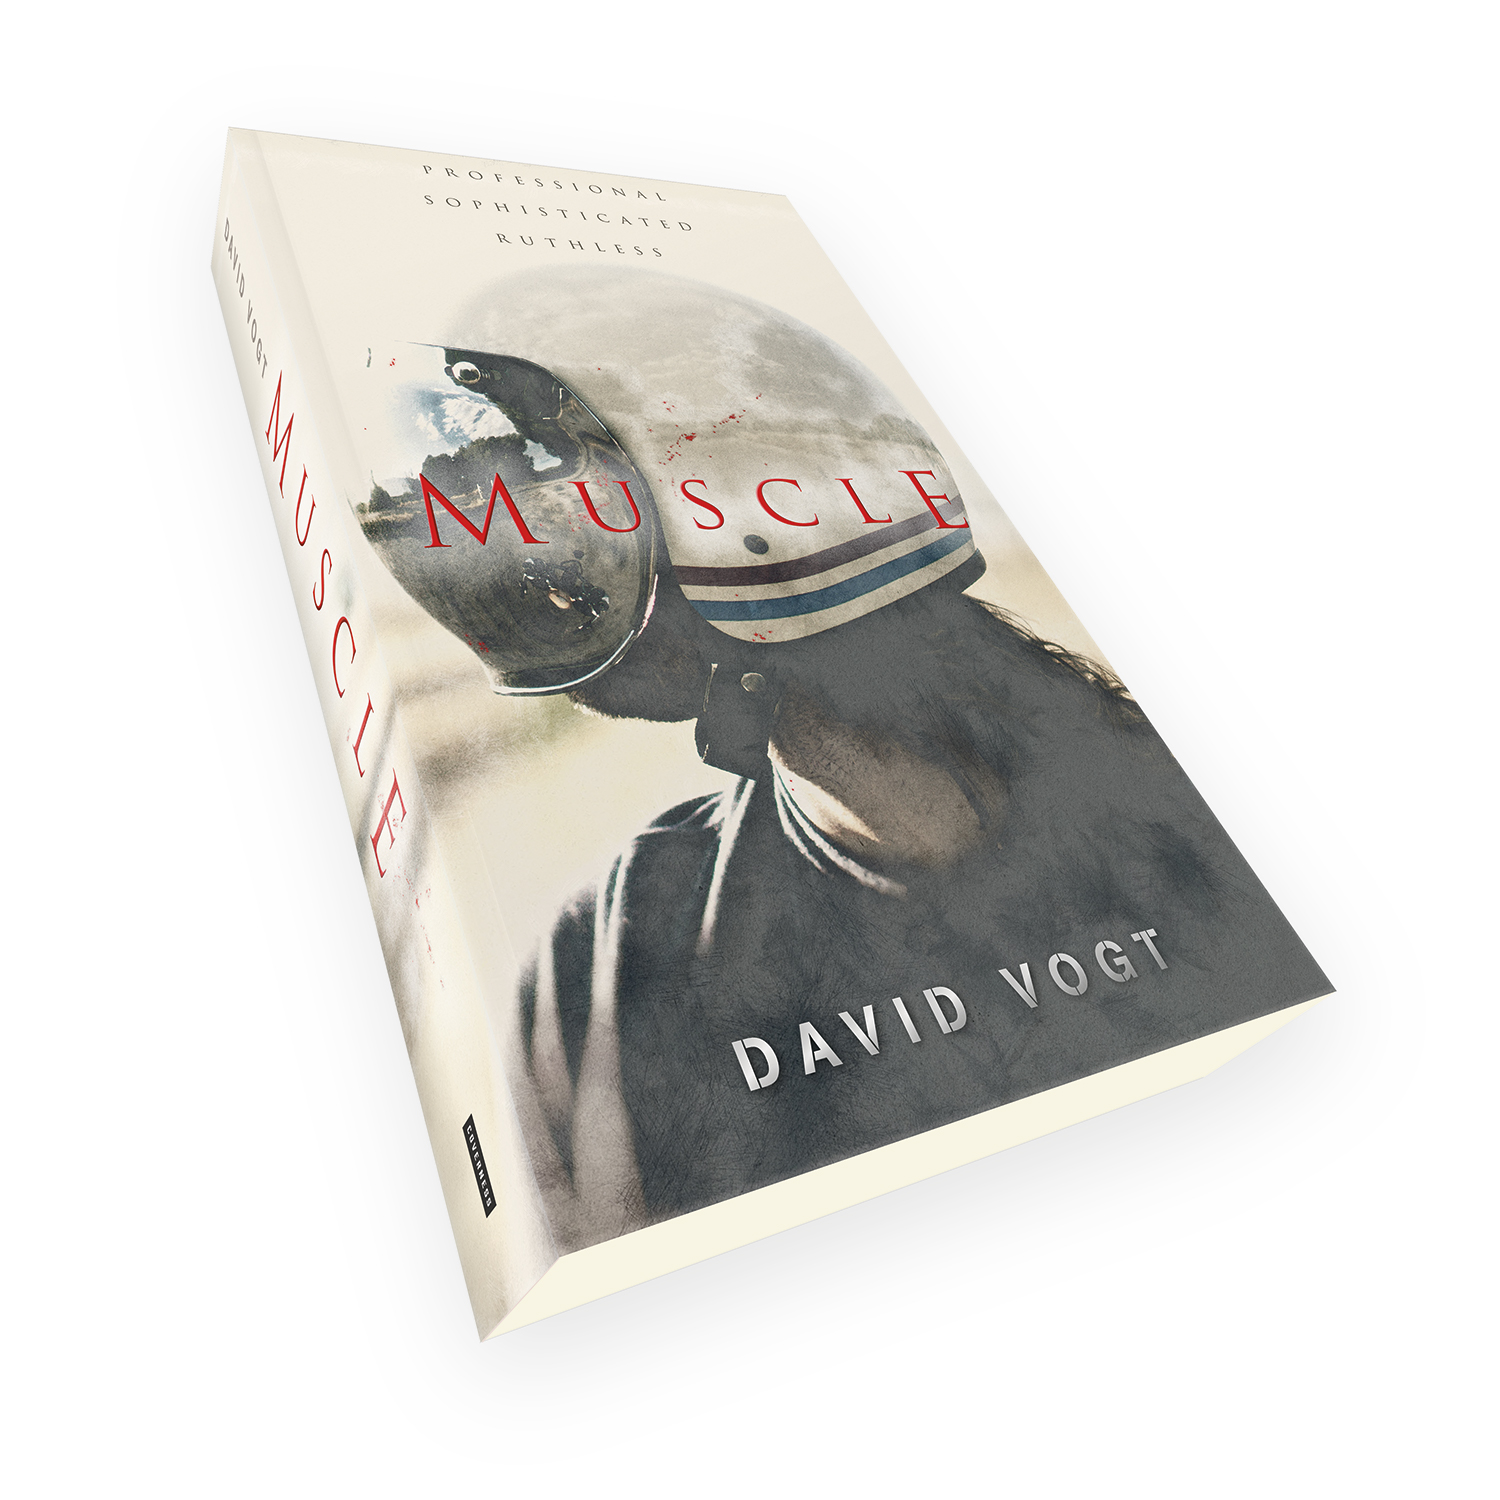 'Muscle' is a bespoke cover design for a modern crime thriller novel. The book cover was designed by Mark Thomas, of coverness.com. To find out more about my book design services, please visit www.coverness.com.